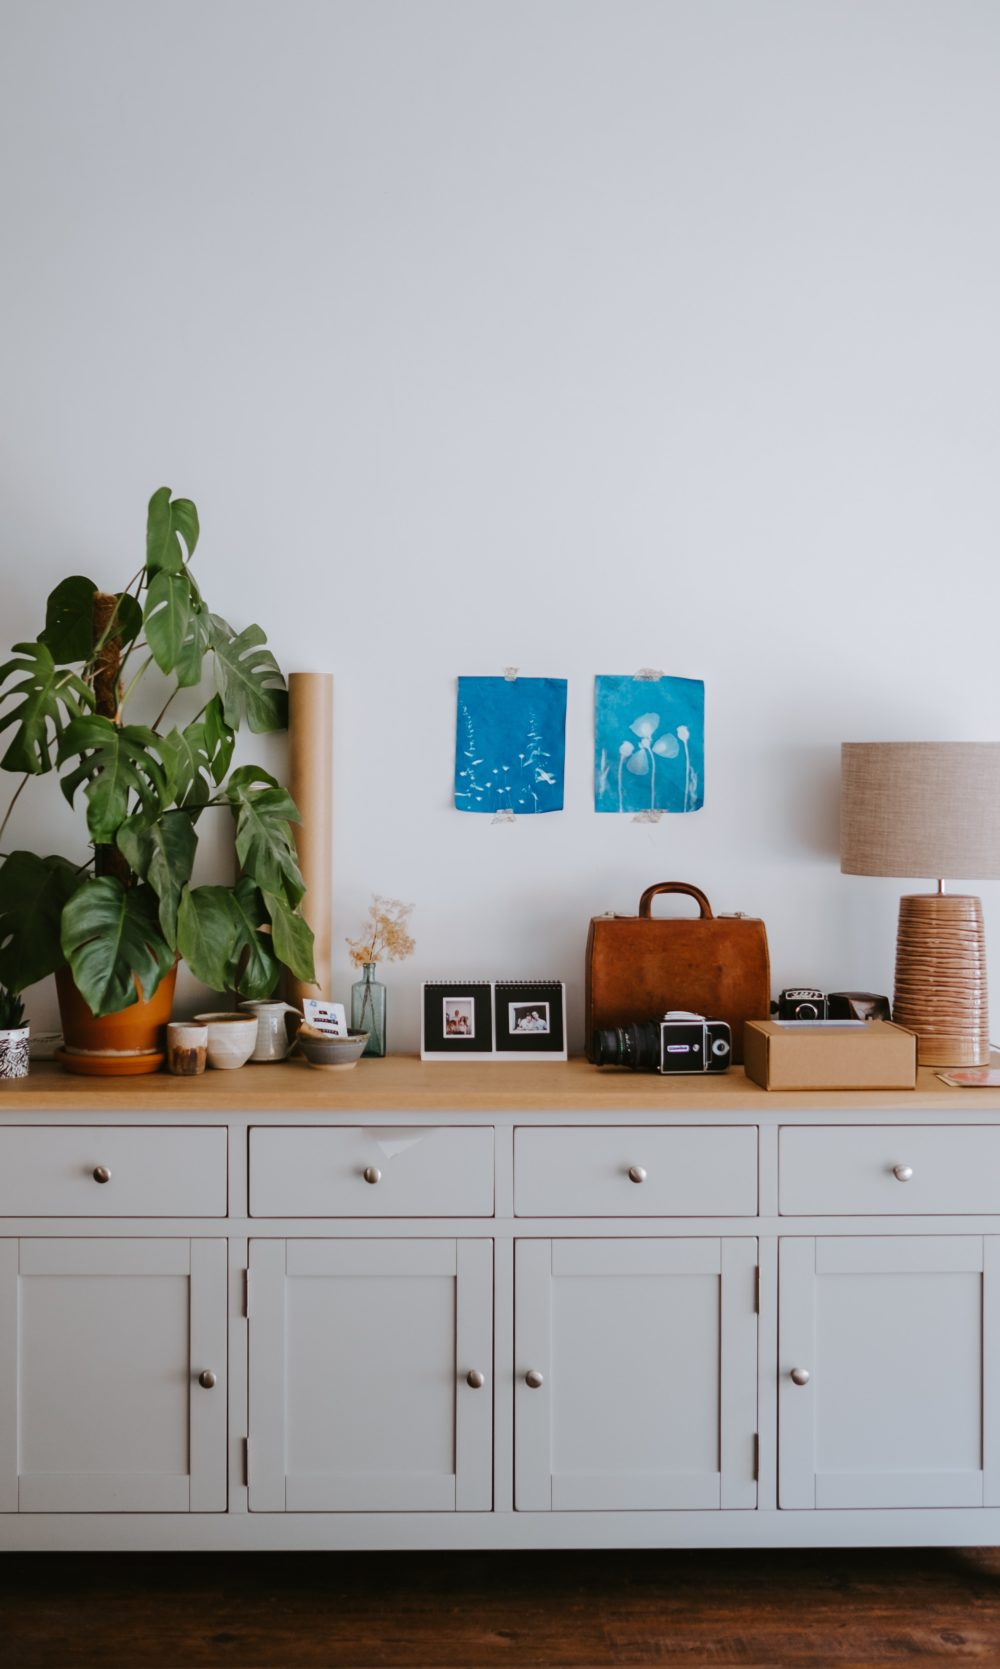 Style a sideboard with pictures, plants, accessories and lighting 3